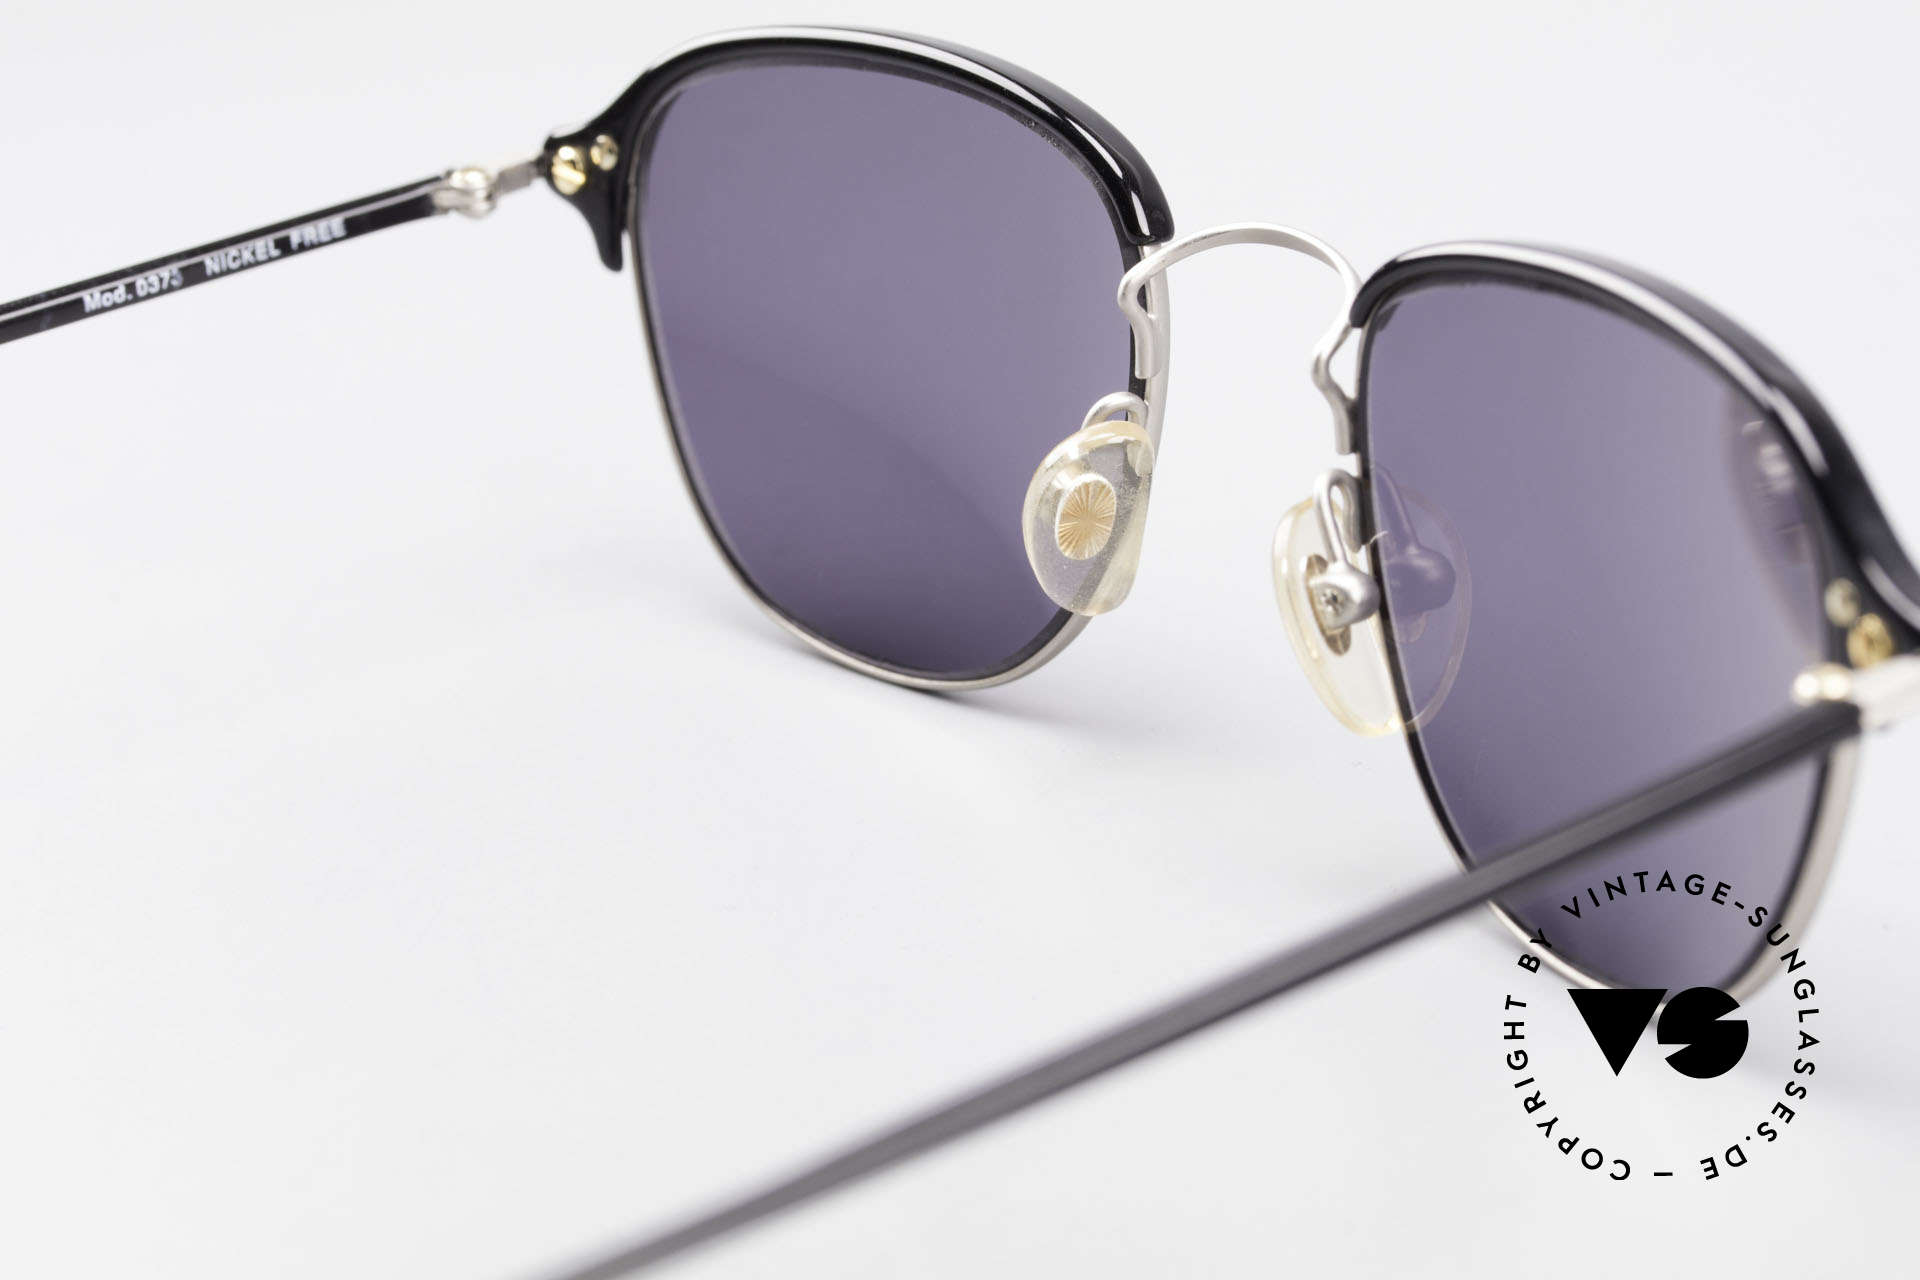 Cutler And Gross 0373 Panto 90's Designer Sunglasses, NO RETRO fashion, but a unique 20 years old ORIGINAL, Made for Men and Women